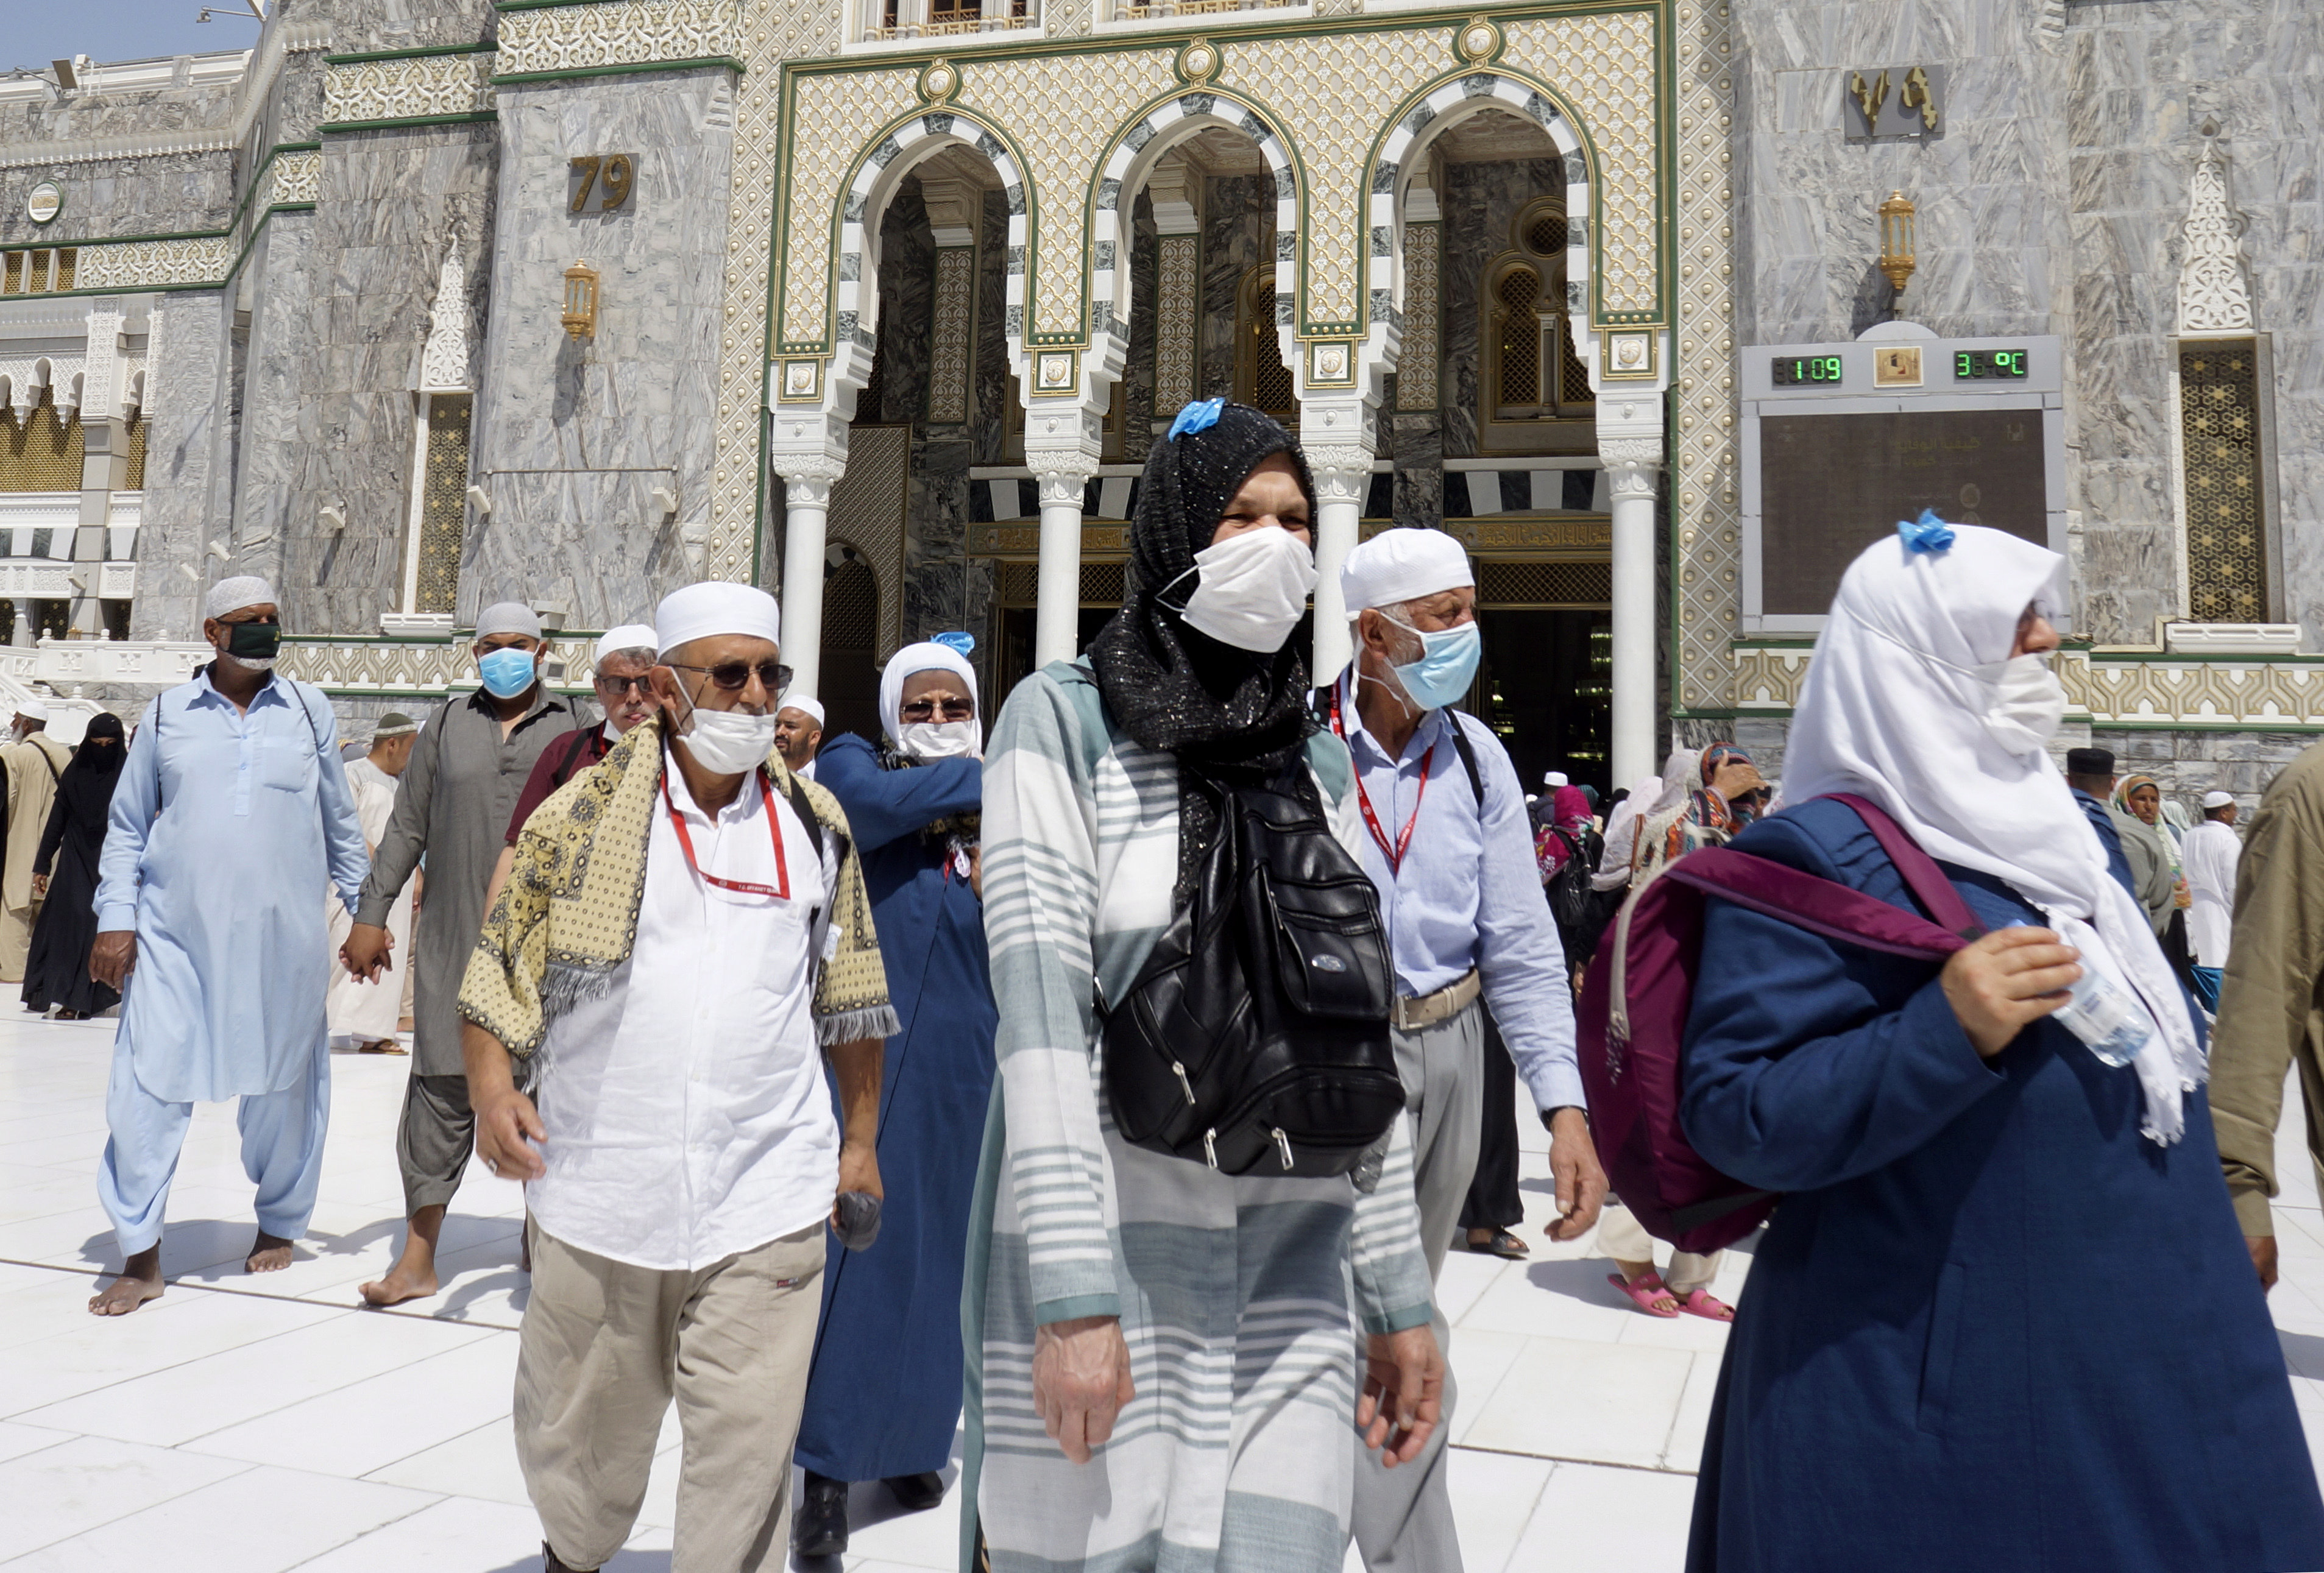 Muslim worshippers wear masks after the noon prayers outside the Grand Mosque, in the Muslim holy city of Mecca, Saudi Arabia, Saturday, March 7, 2020. Saudi Arabia announced there would be no spectators for sports competitions and games starting Saturday in order to combat the spread of the virus. The kingdom has five confirmed cases, but has taken unprecedented measures against the virus' spread, including halting all pilgrimage in Mecca, Islam's holiest site. (AP Photo/Amr Nabil)